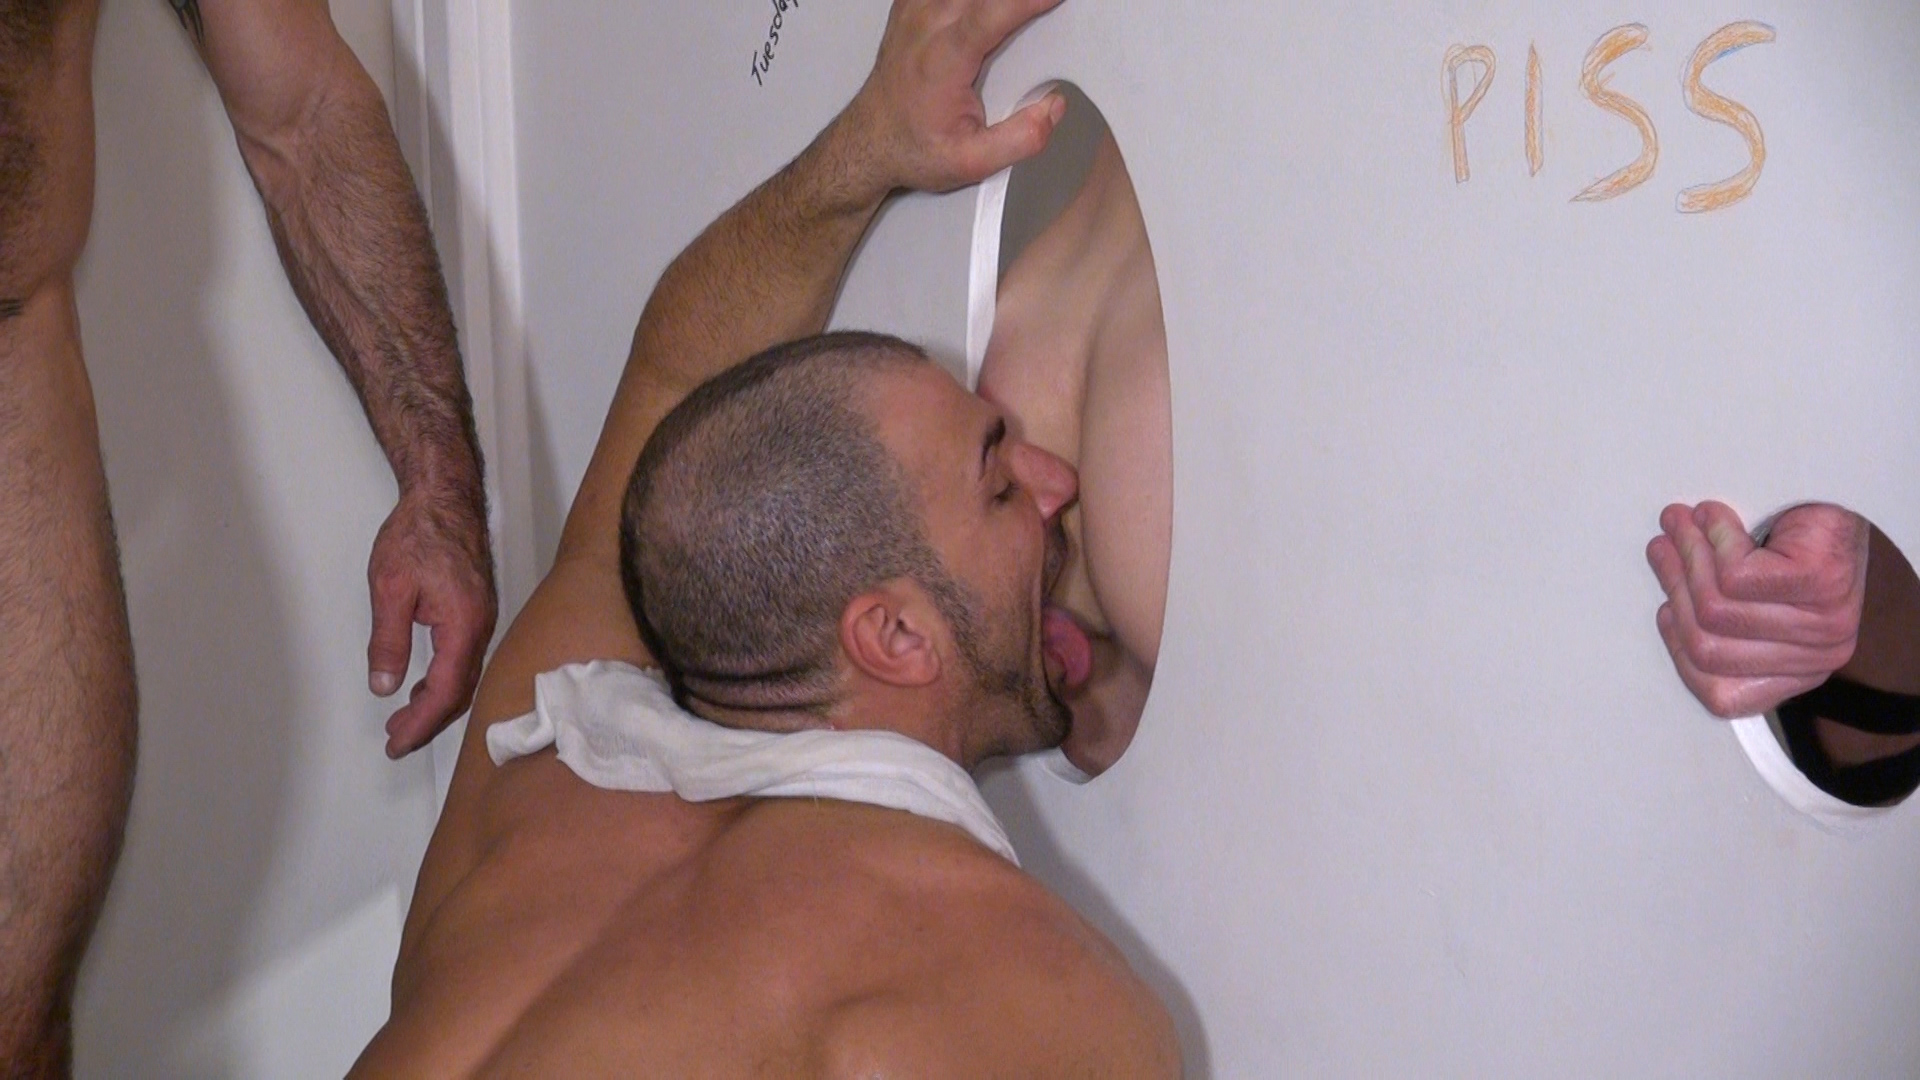 Raw and Rough Jason Mitchell Mason Garet Todd Maxwell Nick Moretti Cope and Derek Anthony Bareback Truck stop gloryhole sex Amateur Gay Porn 12 Amateur Trucker Sex At A Gloryhole With Piss, Cum and Bareback Action